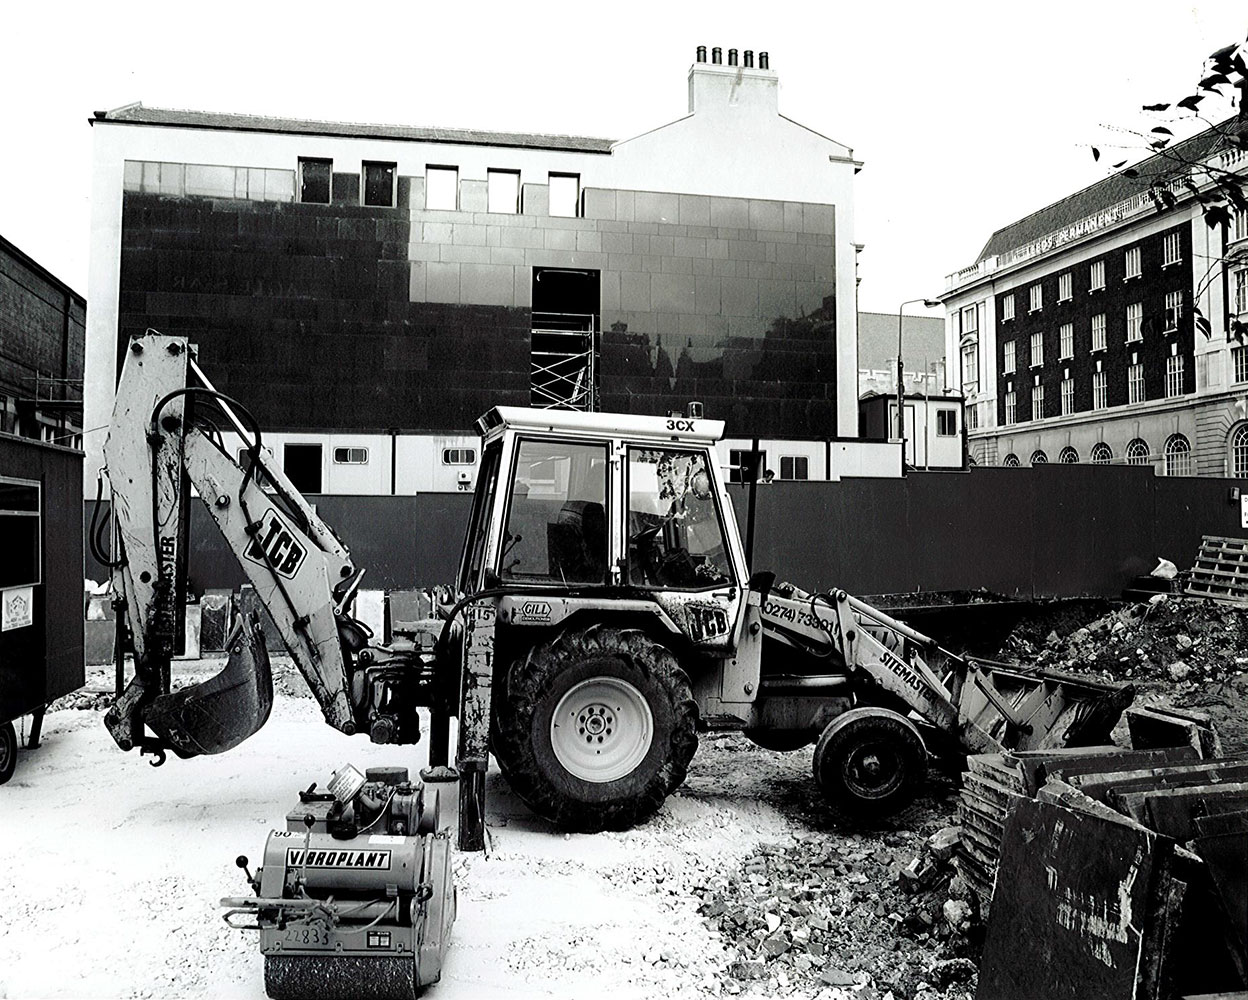 Construction work on Victoria Gardens and the newly built front entrance of the Henry Moore Institute.